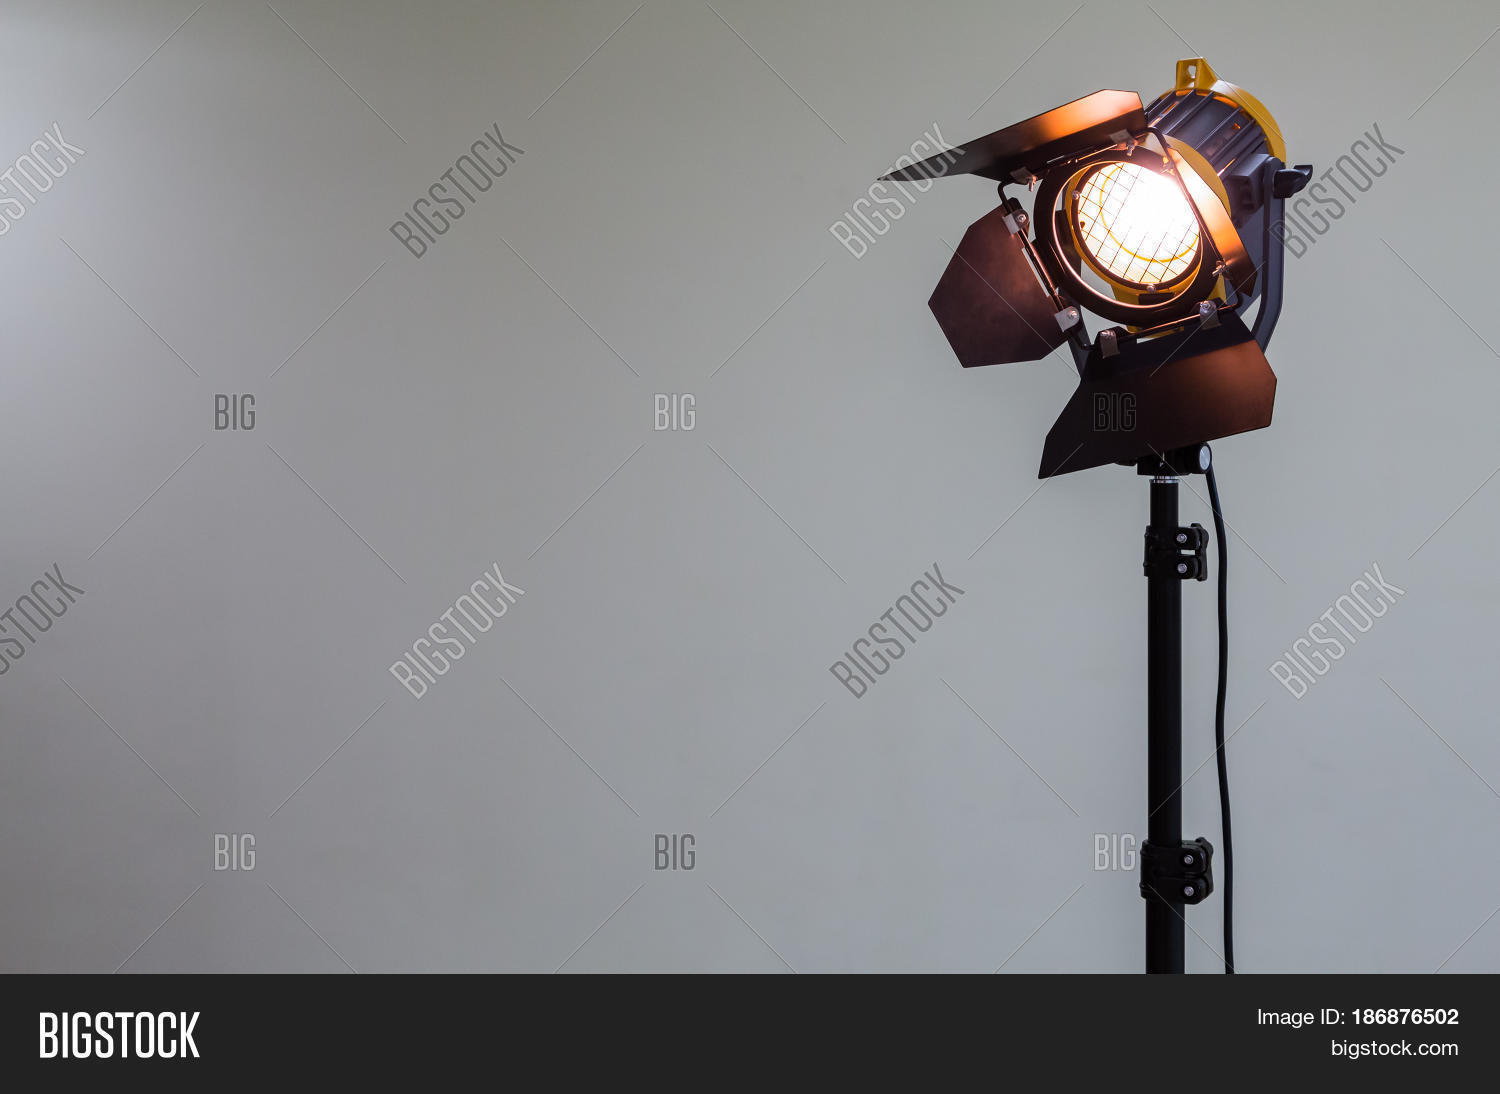 lighting for stand photo umbrella studio light photography product tripod equipment